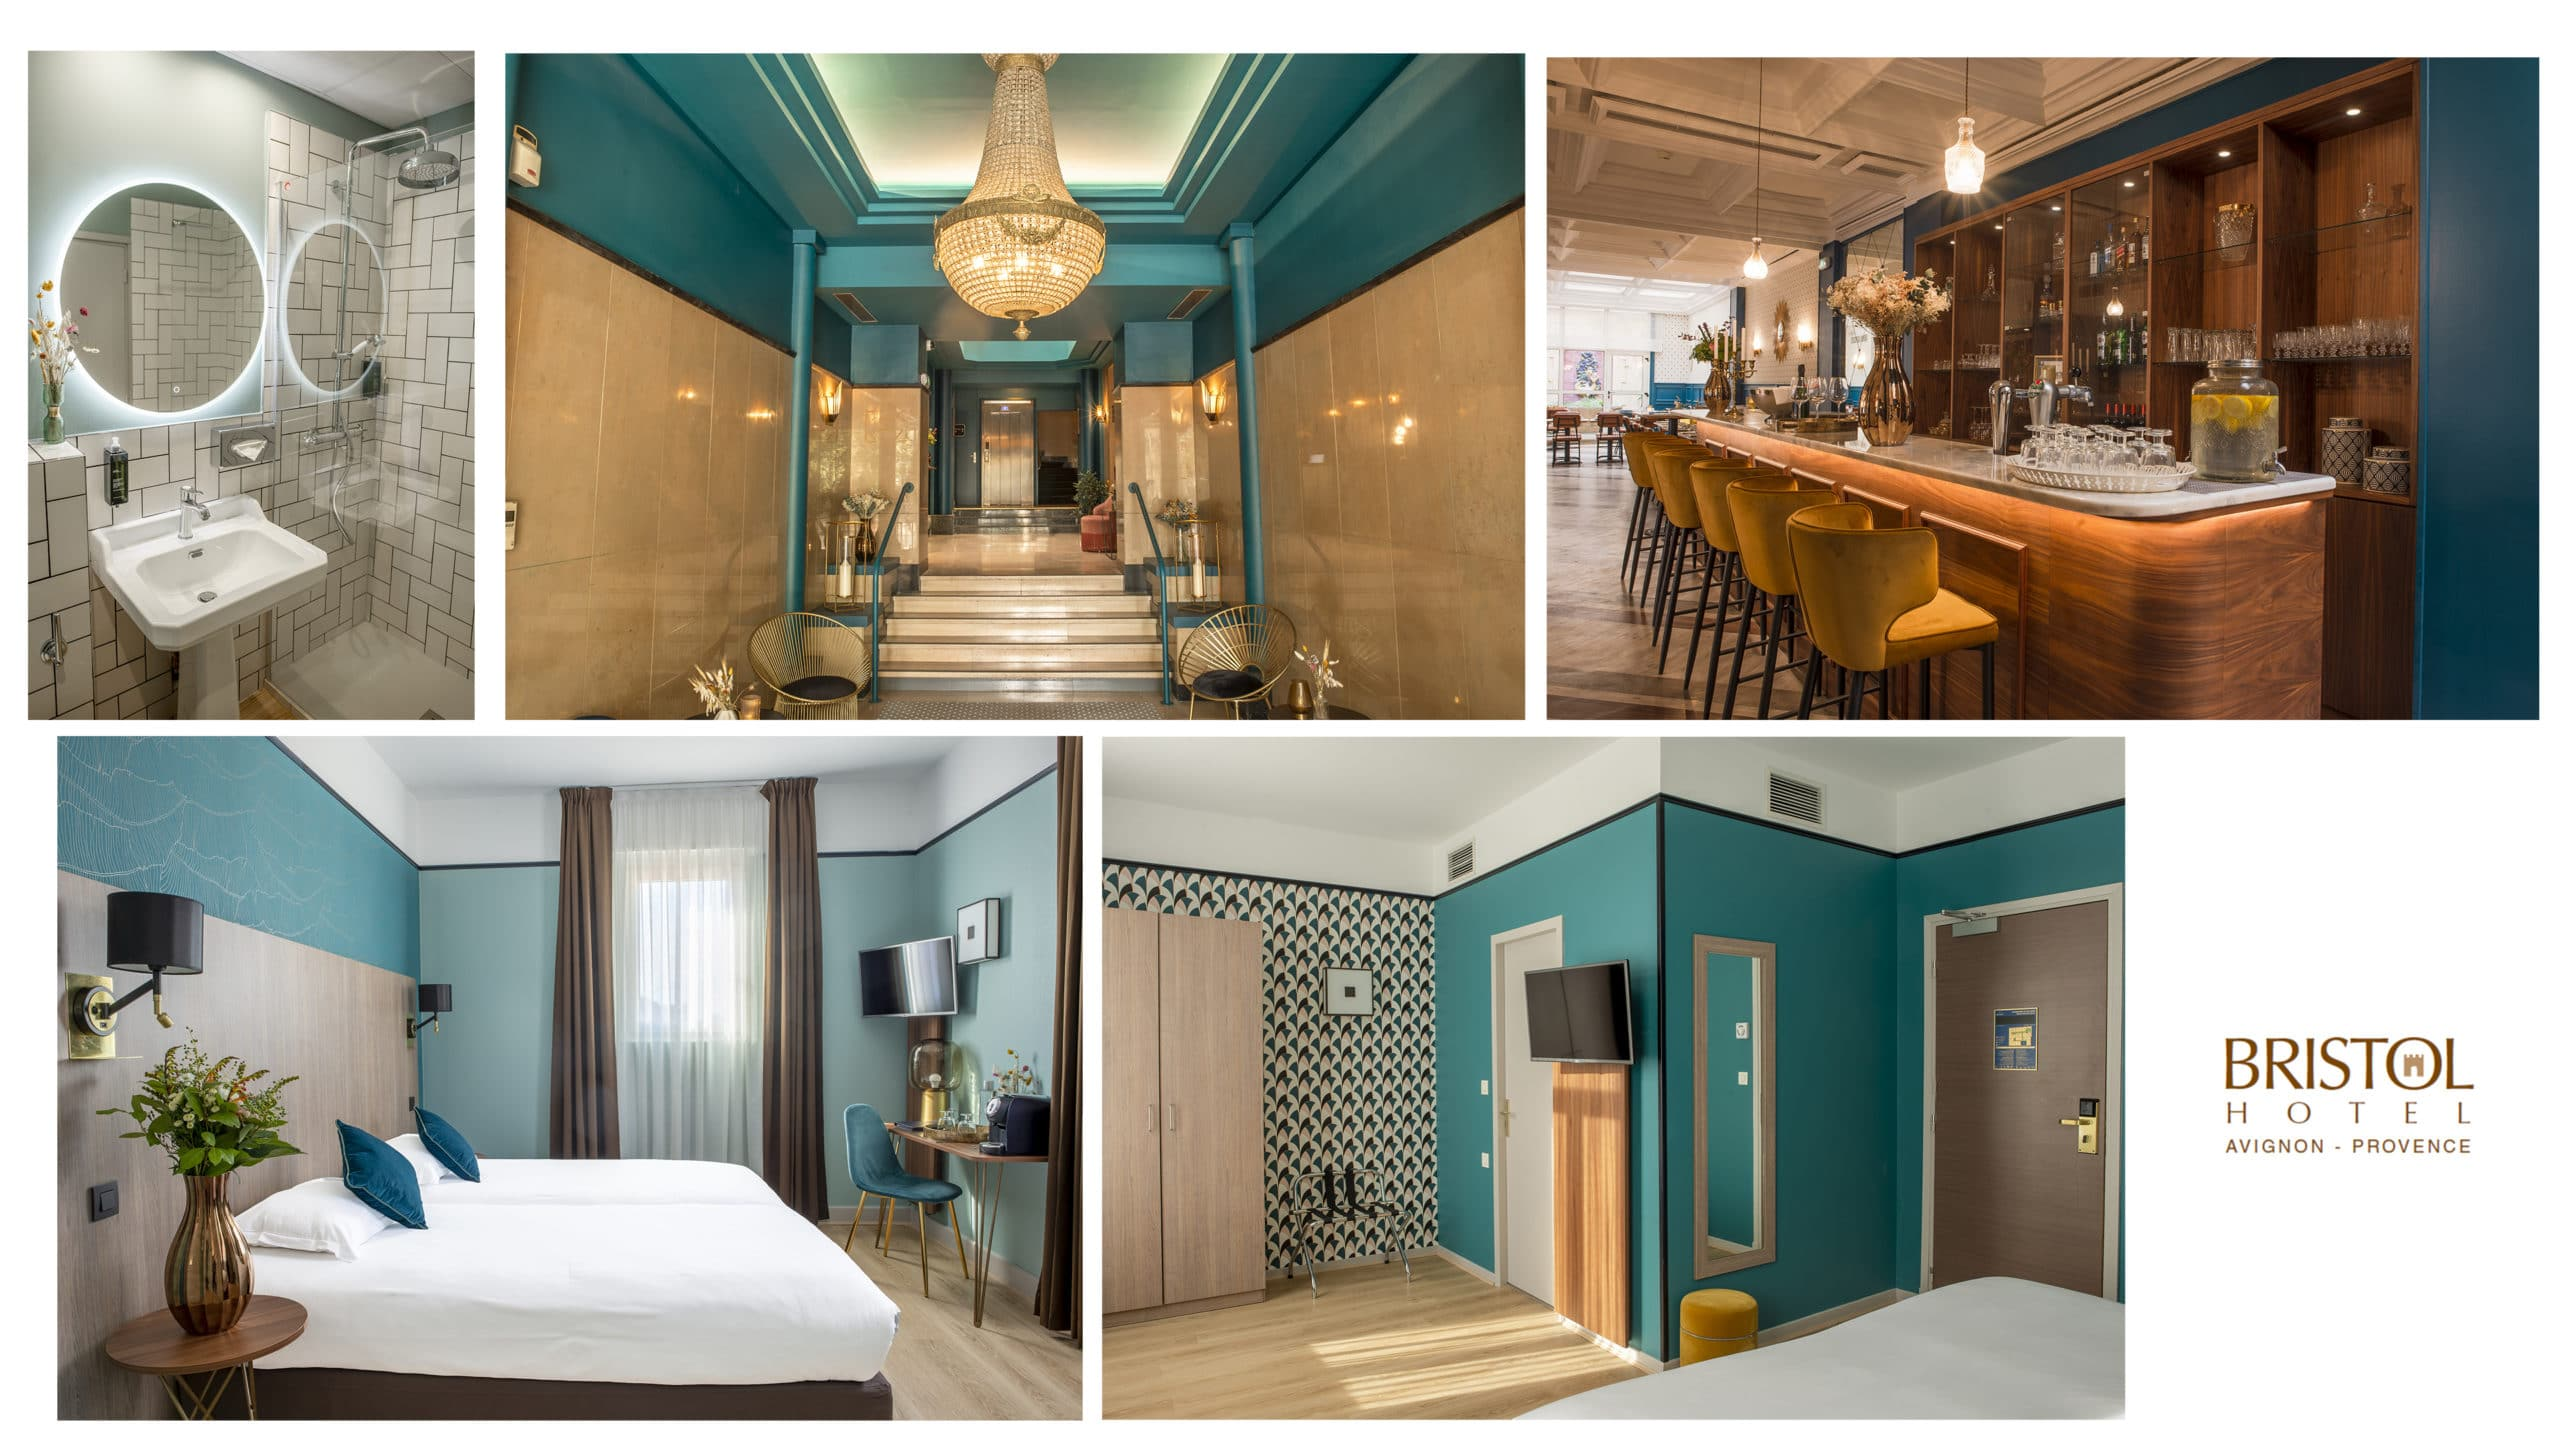 Photographie architecture hotellerie restauration